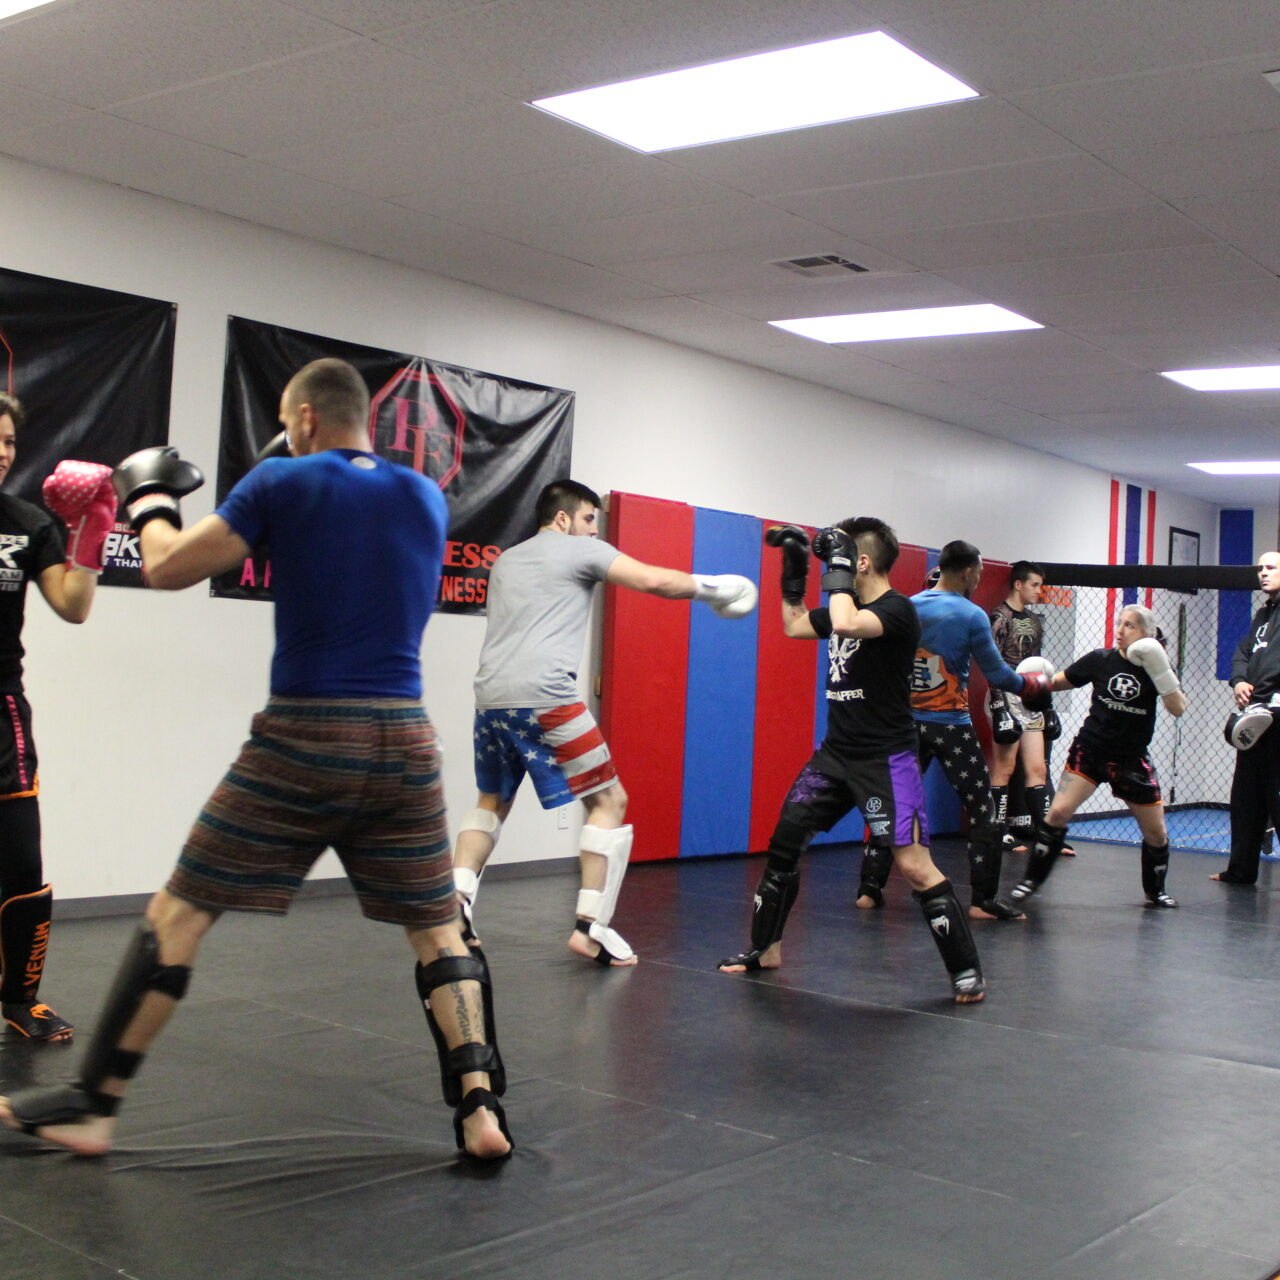 kickboxing photo 2